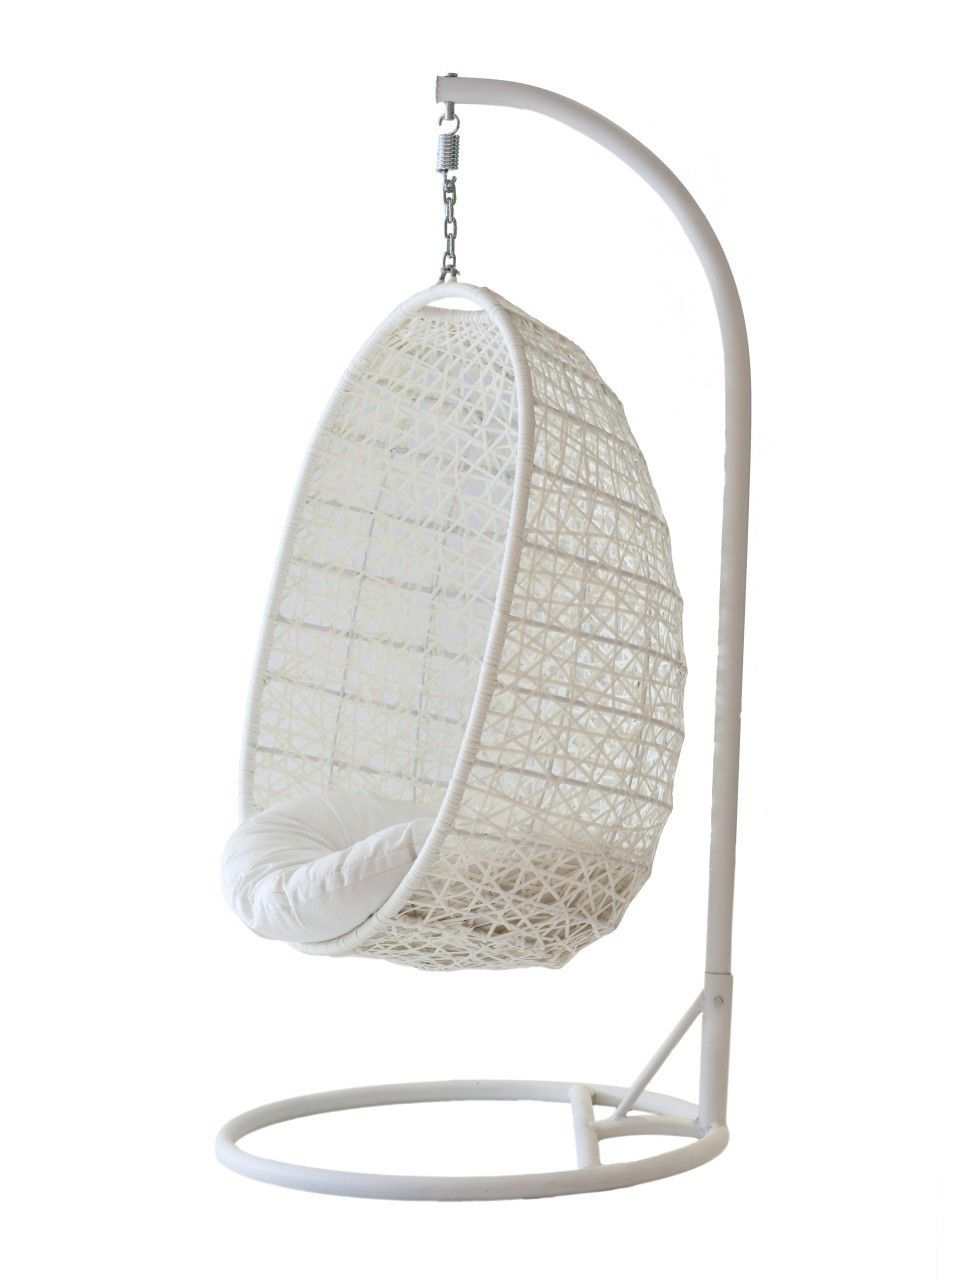 Hanging Chairs Ikea Best Gaming Desk Chair Affordable For Bedroom Cool Indoor And Within At Bedrooms Ikeachair